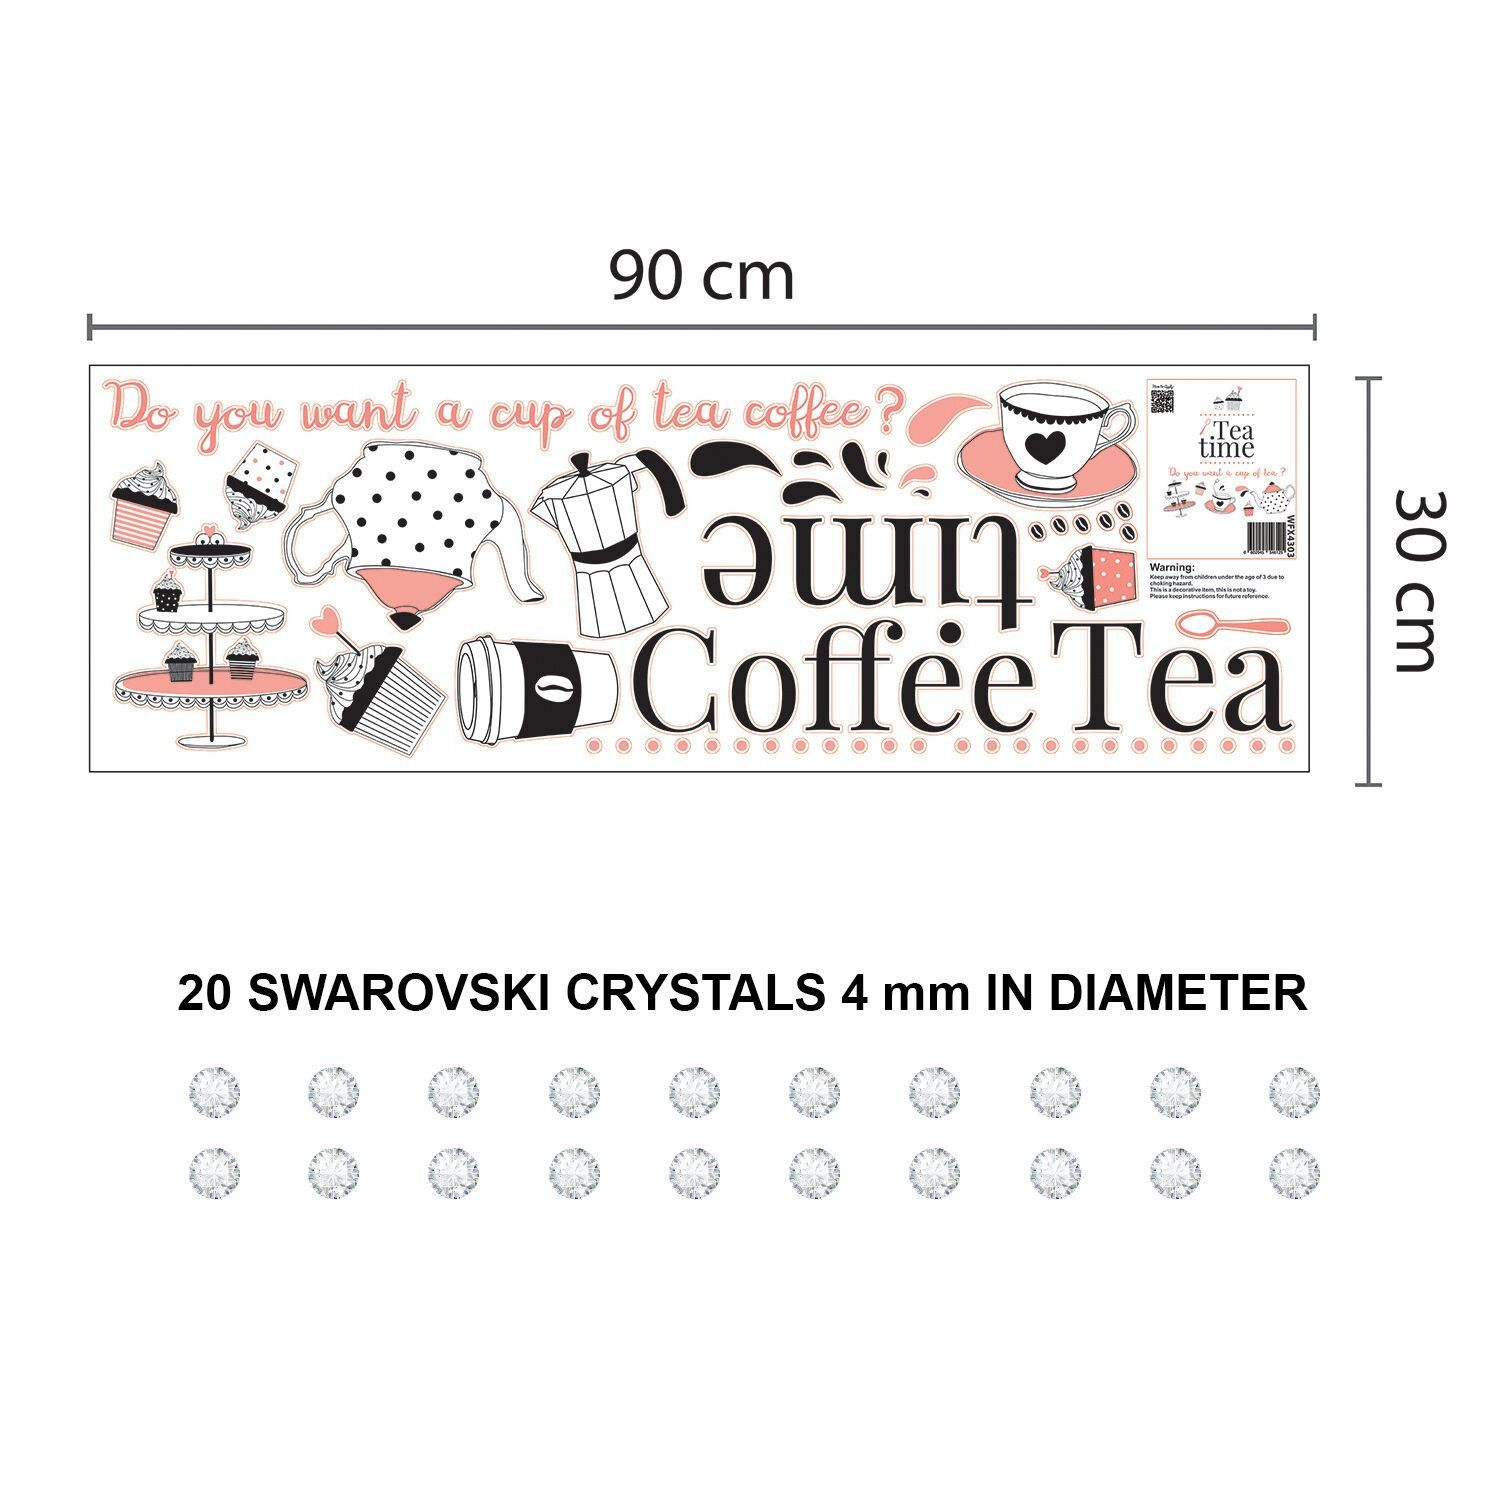 Combo of Coffee or Tea Time and Swarovski crystals Wall Stickers, Kitchen, Bathroom, Living room, Self-adhesive, Decal, Decoration, DIY